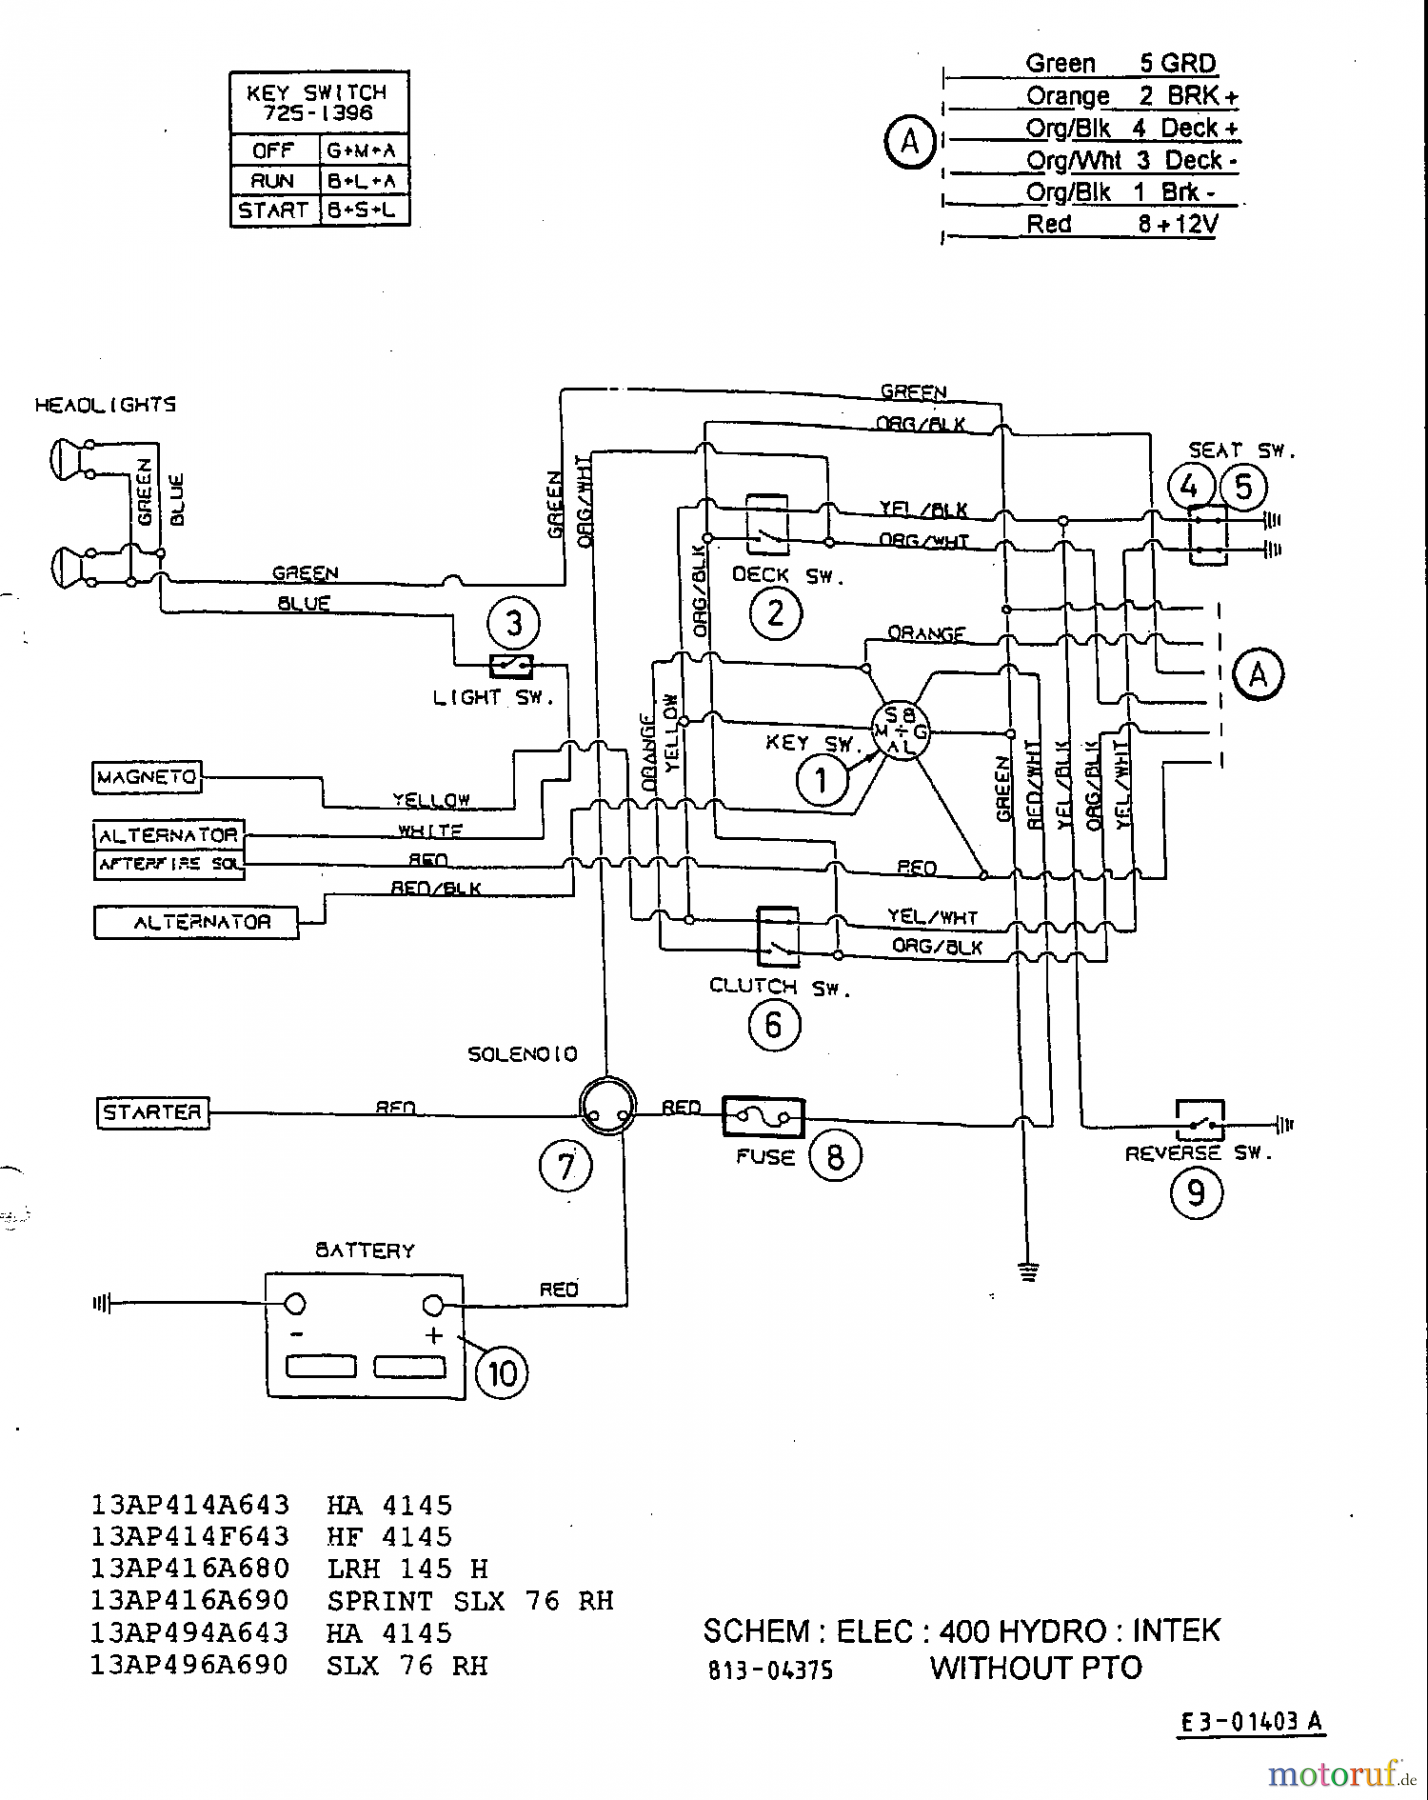 wiring diagram lawn tractor wiring diagrams owner Wiring Diagram for Craftsman 917 270821 Riding Lawn Mower